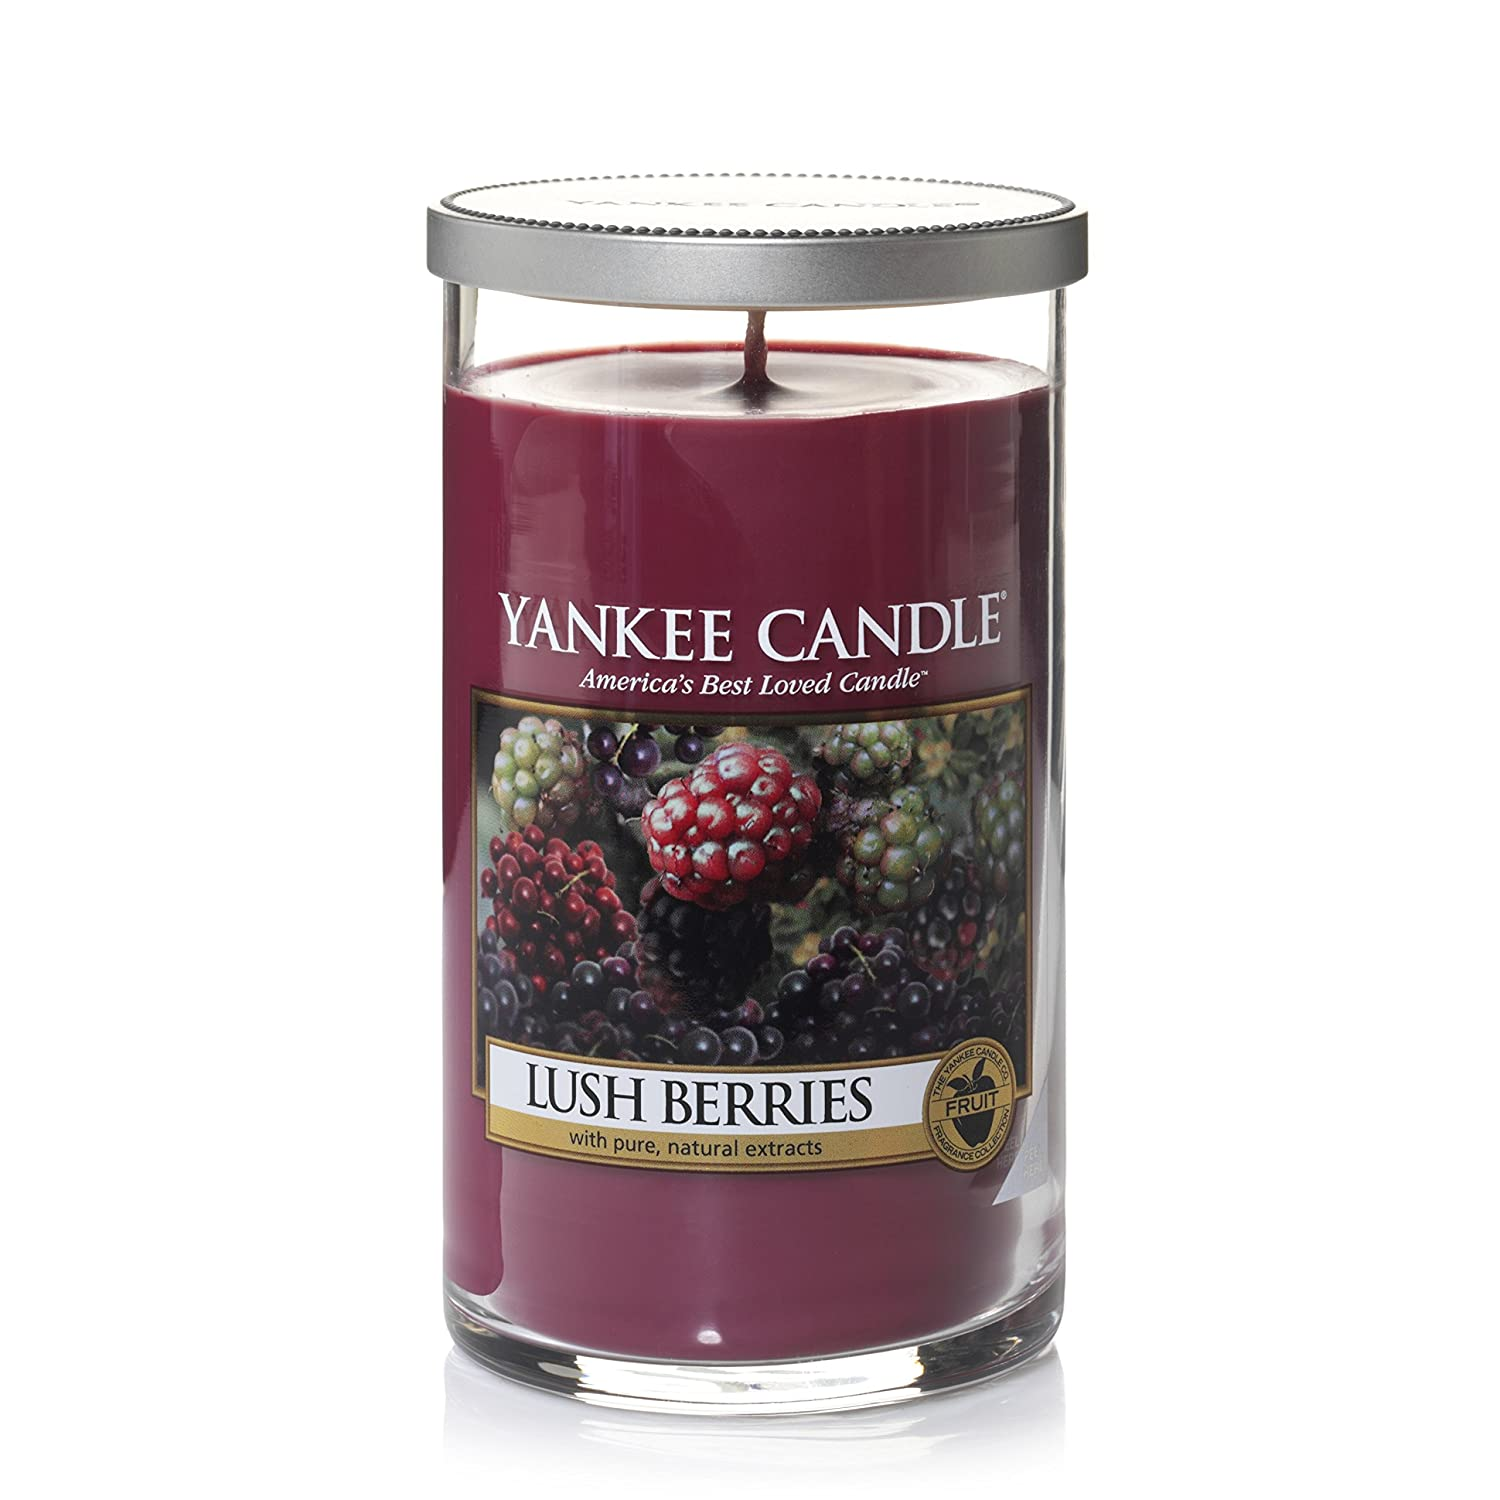 Yankee Candle Medium Perfect Pillar™ Candle , Lush Berries The Yankee Candle Company 1342520z